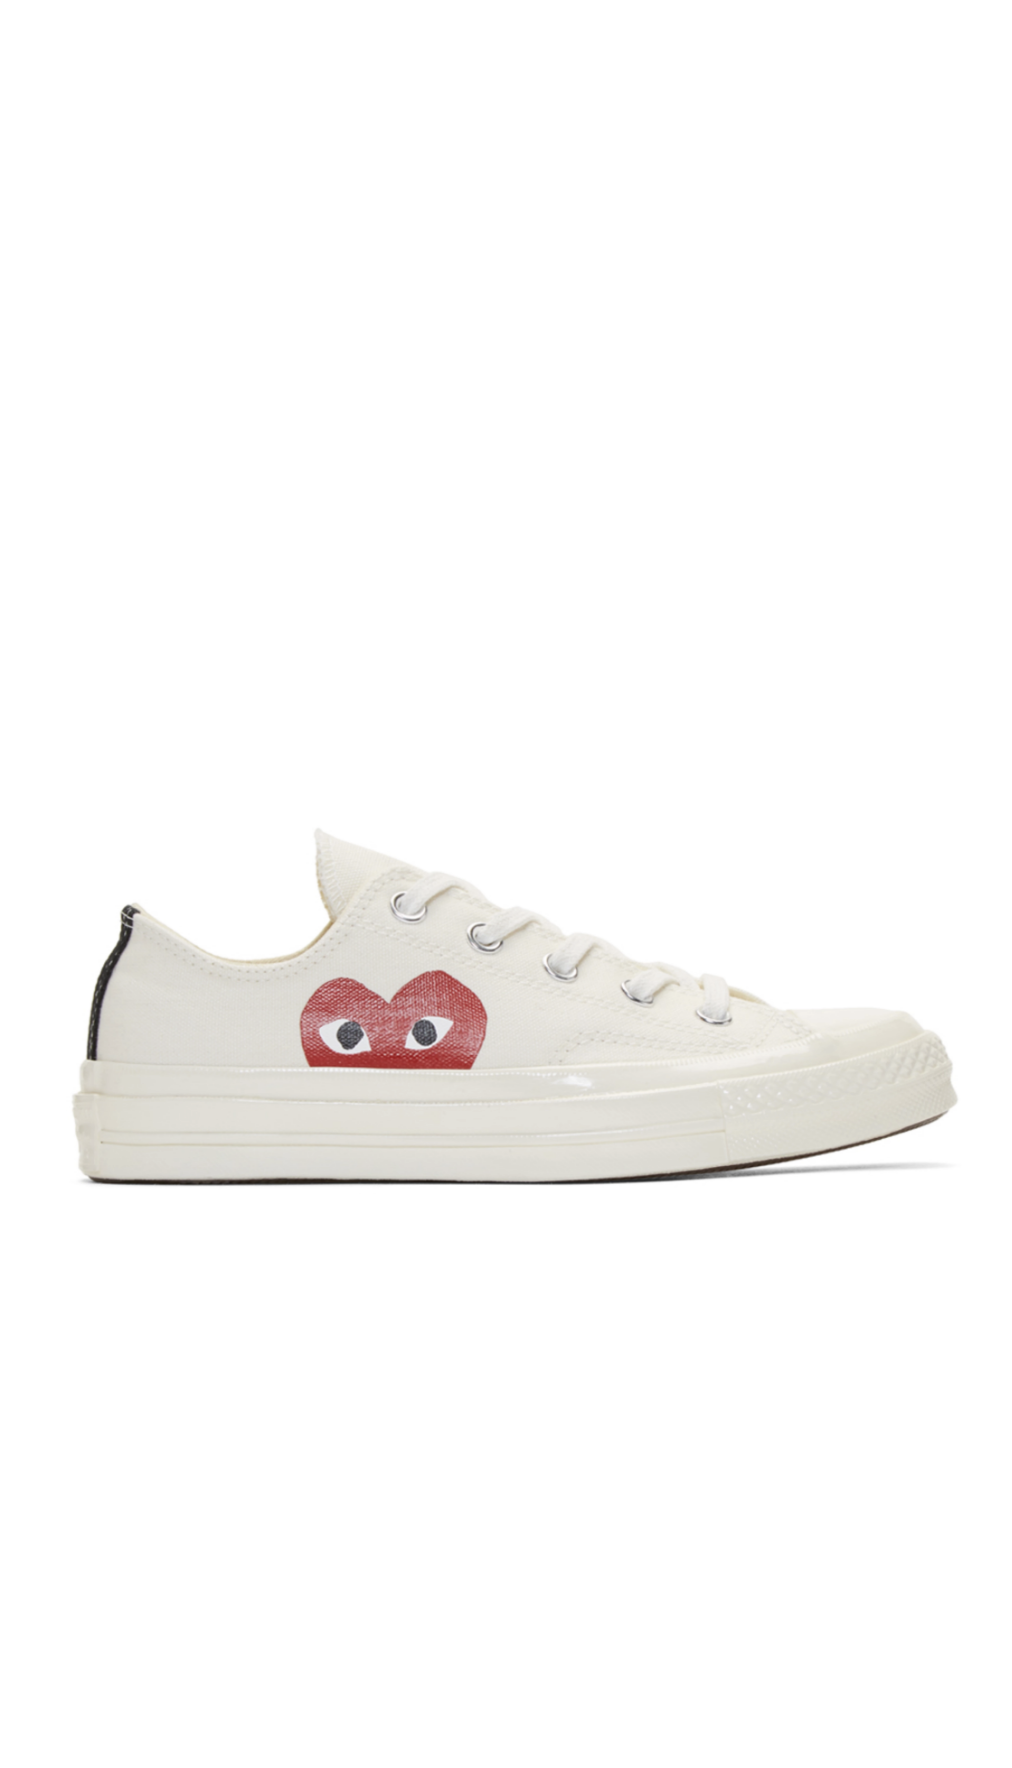 8d2dd5319afc Comme des Garçons Play Off-White Converse Edition Chuck Taylor All-Star  70  Sneakers from SSENSE (men